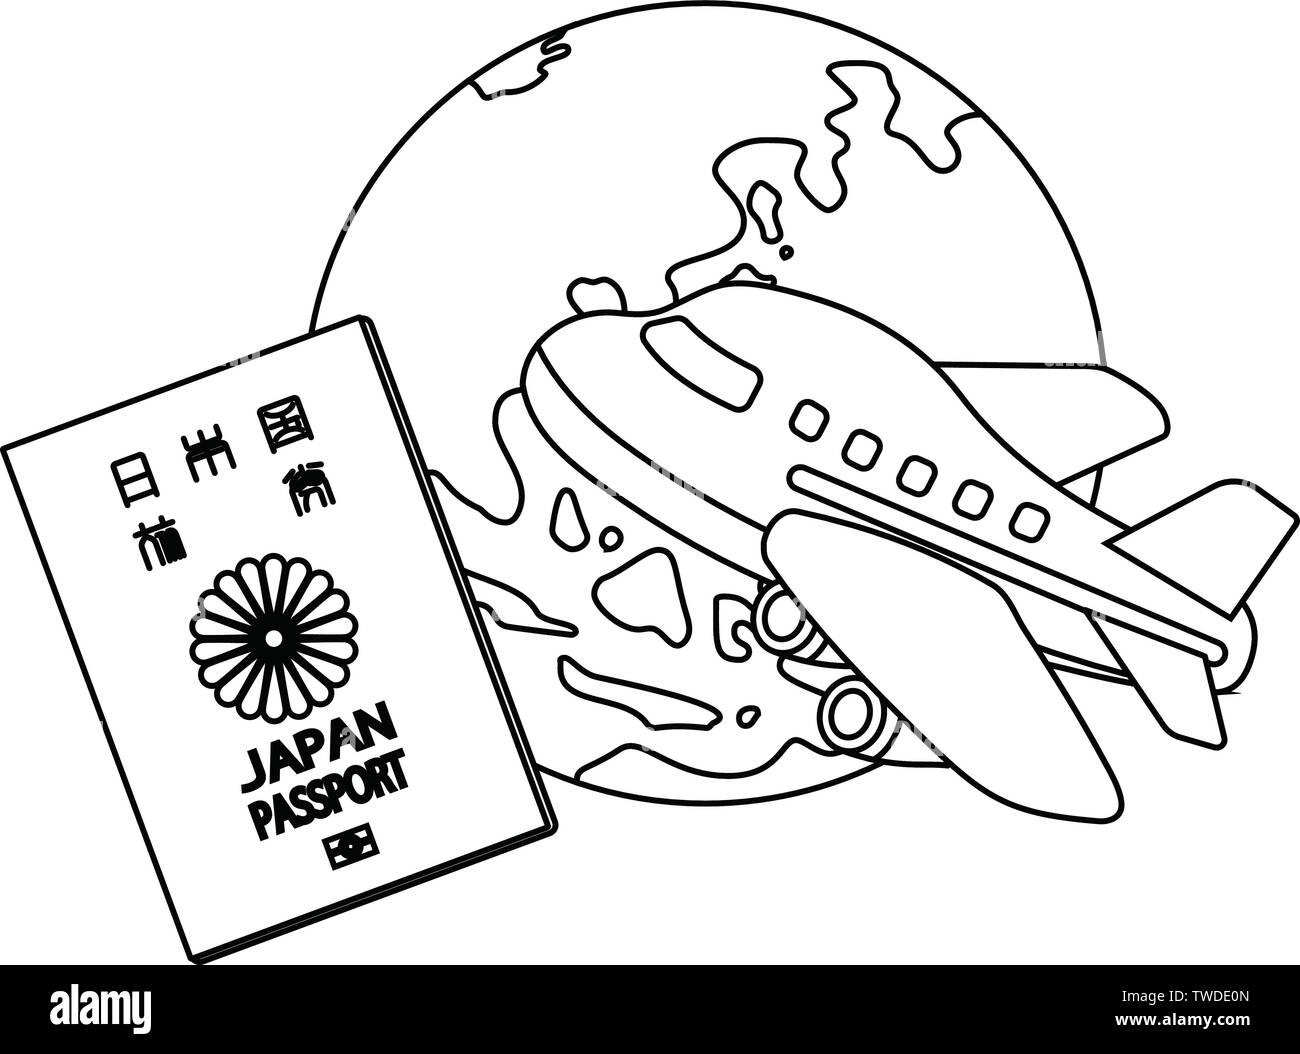 This is a Illustration of Japanese passport. Stock Vector